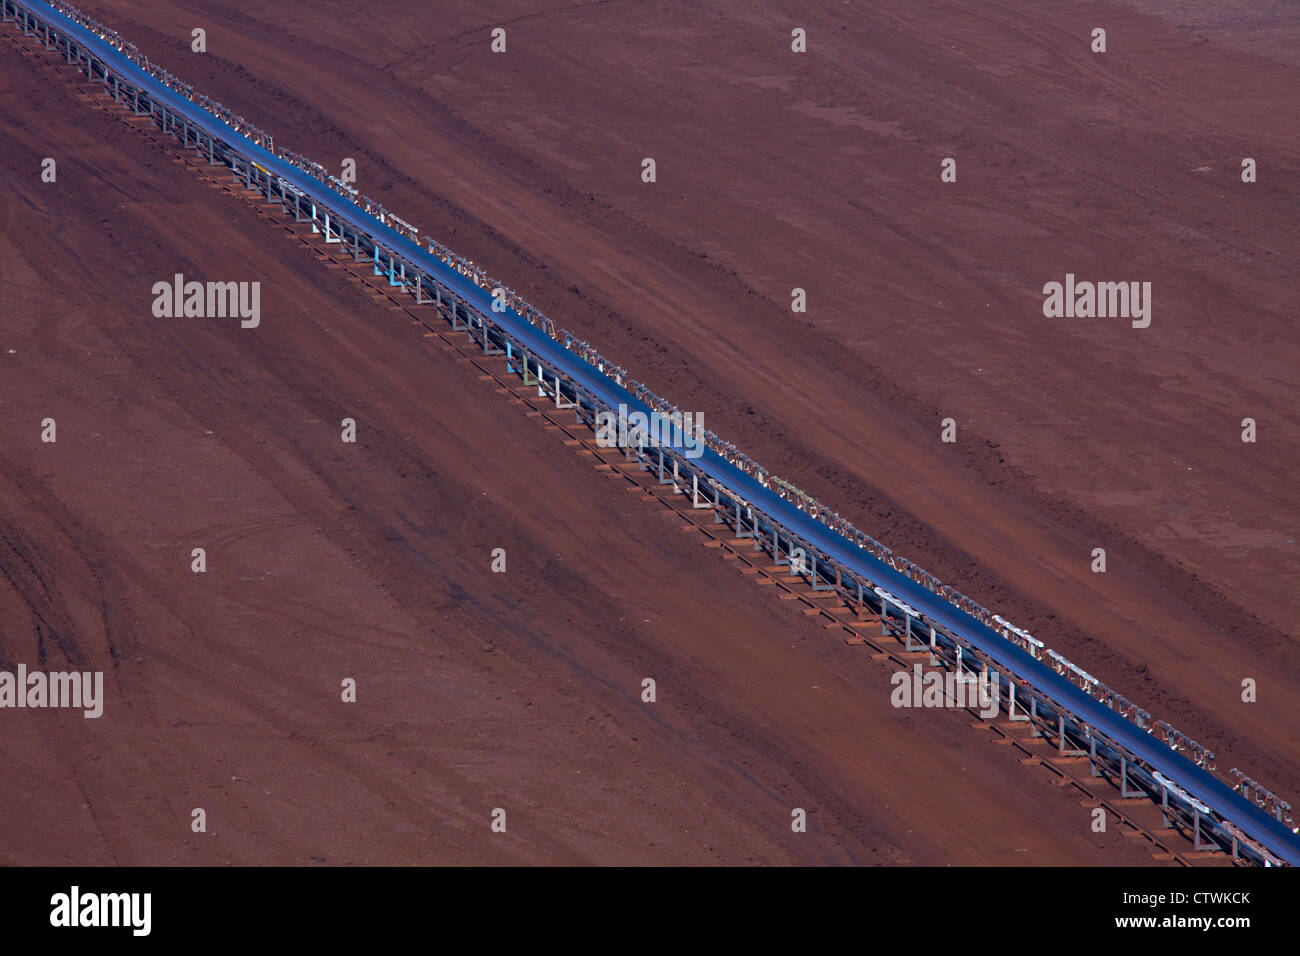 Brown coal / lignite being transported on conveyor belt at open-pit mine, Saxony-Anhalt, Germany - Stock Image